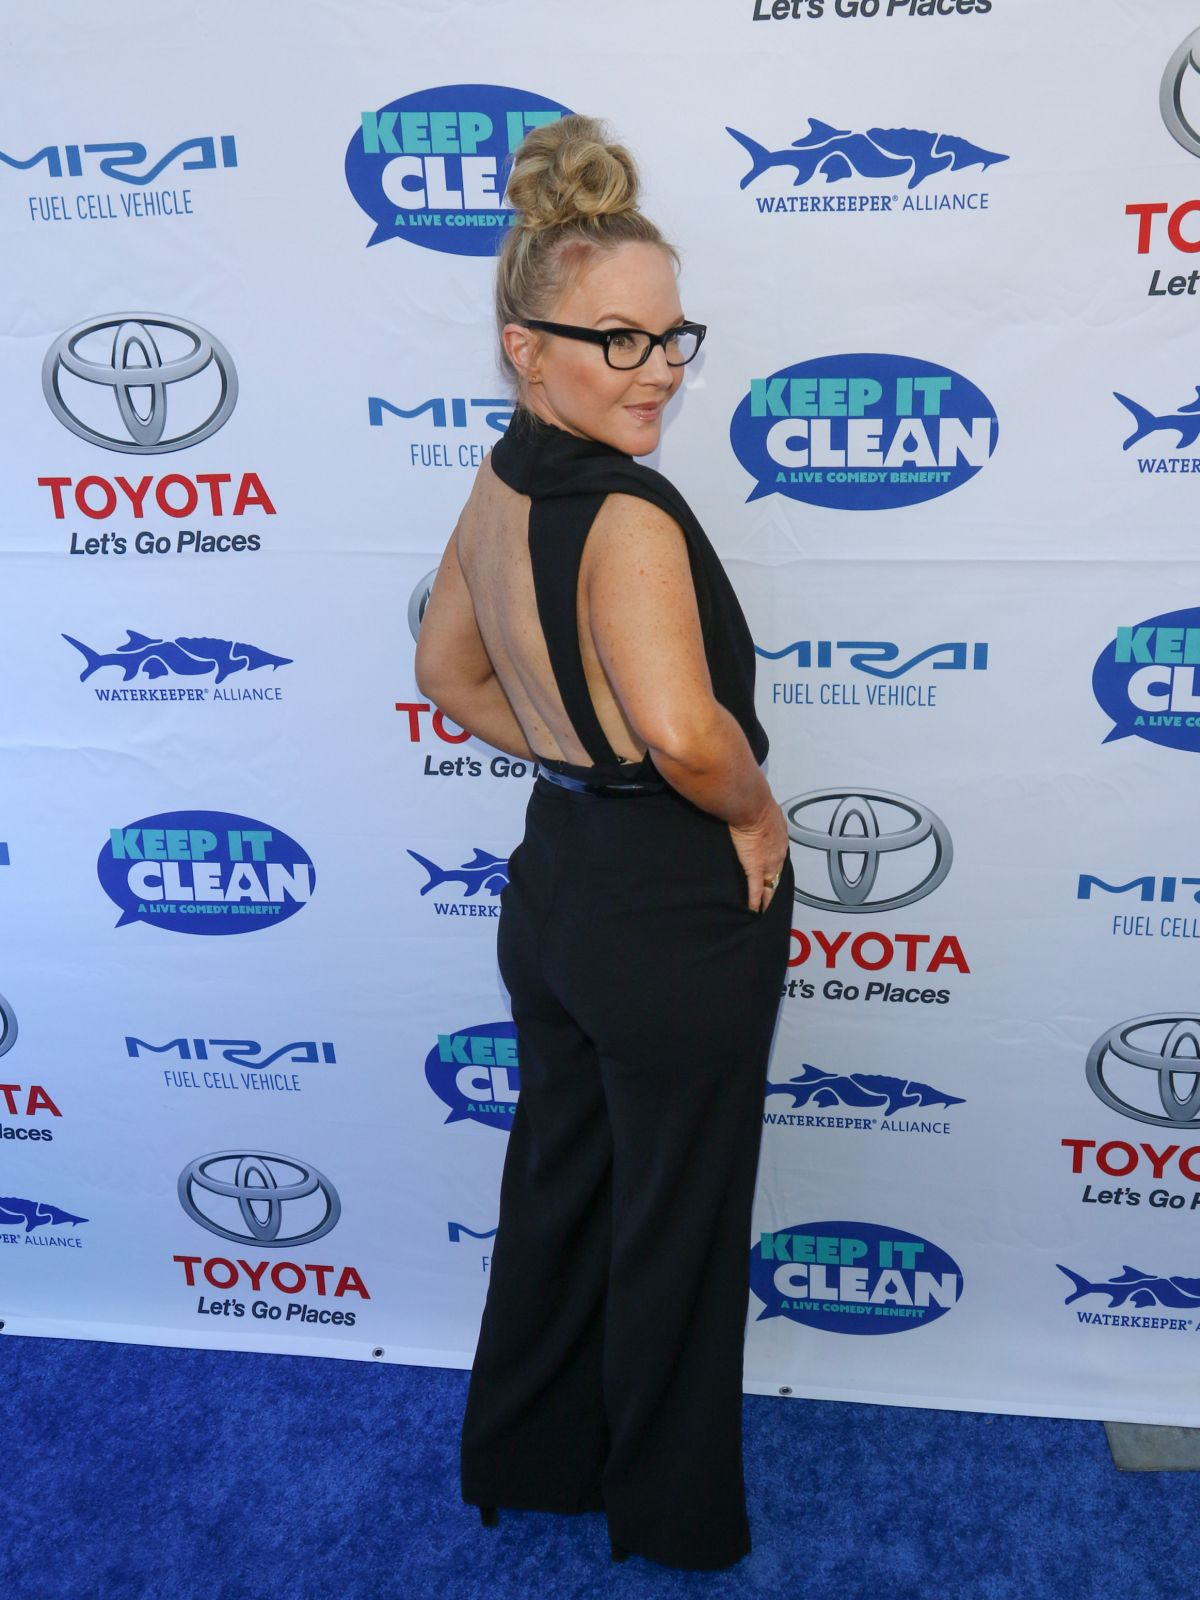 RACHAEL HARRIS at Keep It Clean Comedy Benefit in Los Angeles 04/21/2017